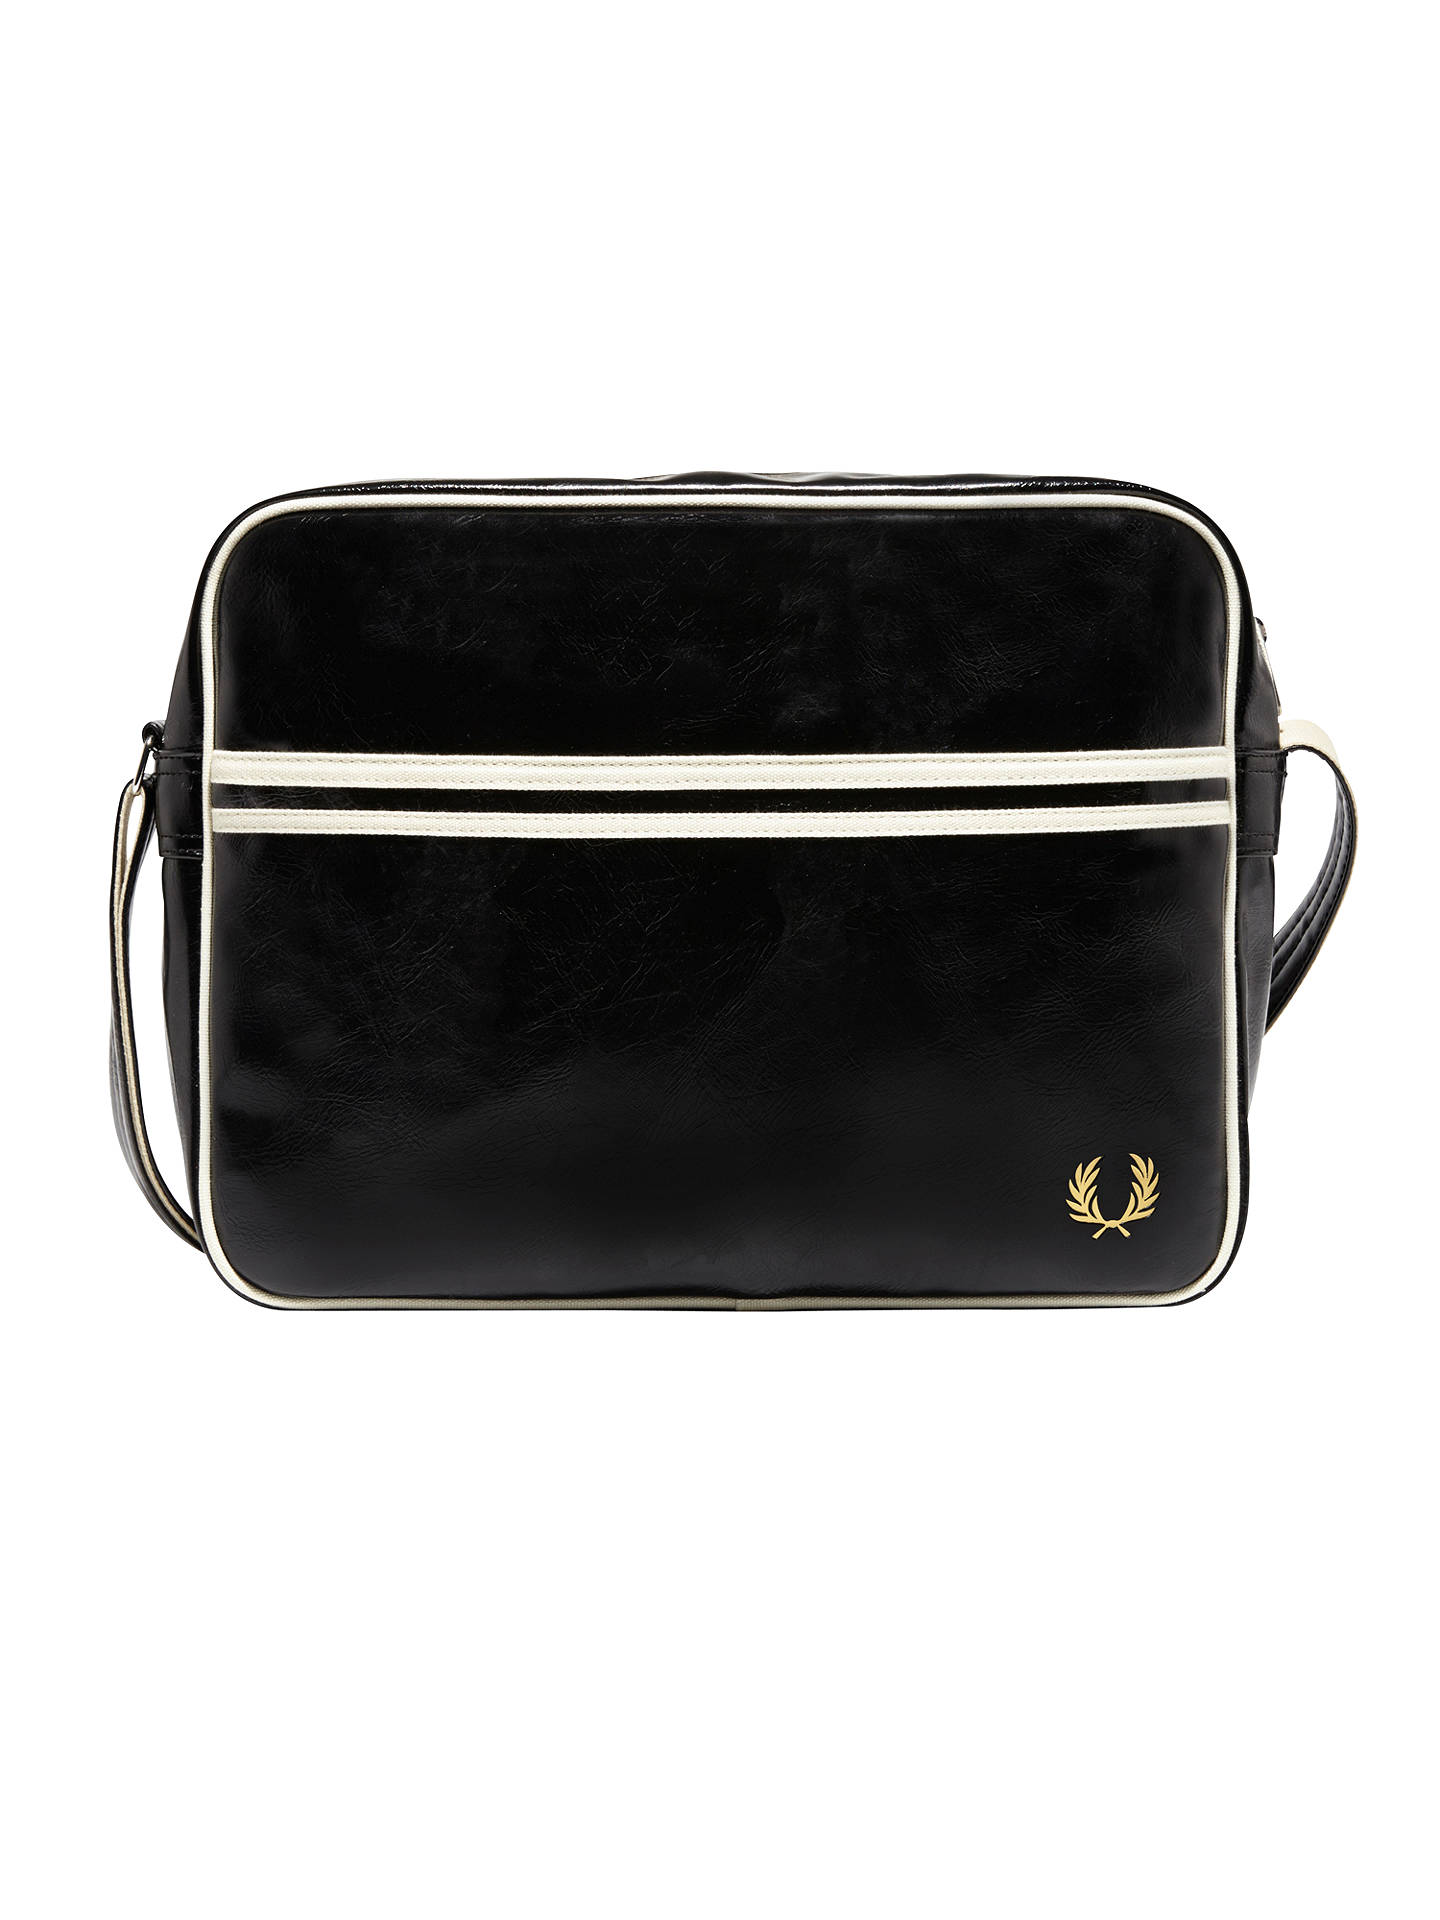 BuyFred Perry Shoulder Bag e571aeea7dcf0